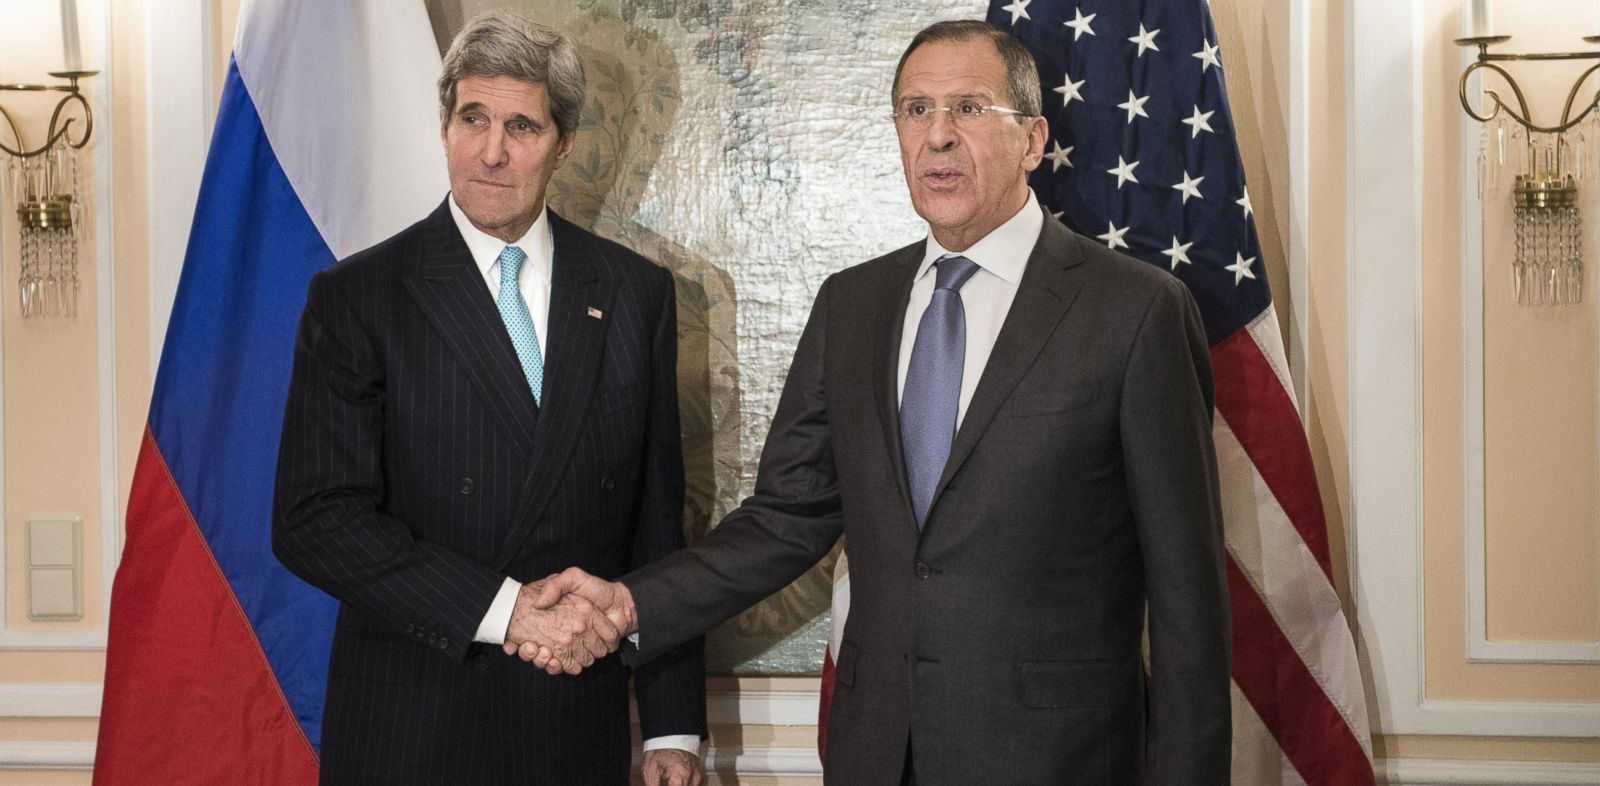 PHOTO: U.S. Secretary of State John Kerry, left, is pictured with Russian Foreign Minister Sergey Lavrov, right, on Jan. 31, 2014 in Munich, Germany.